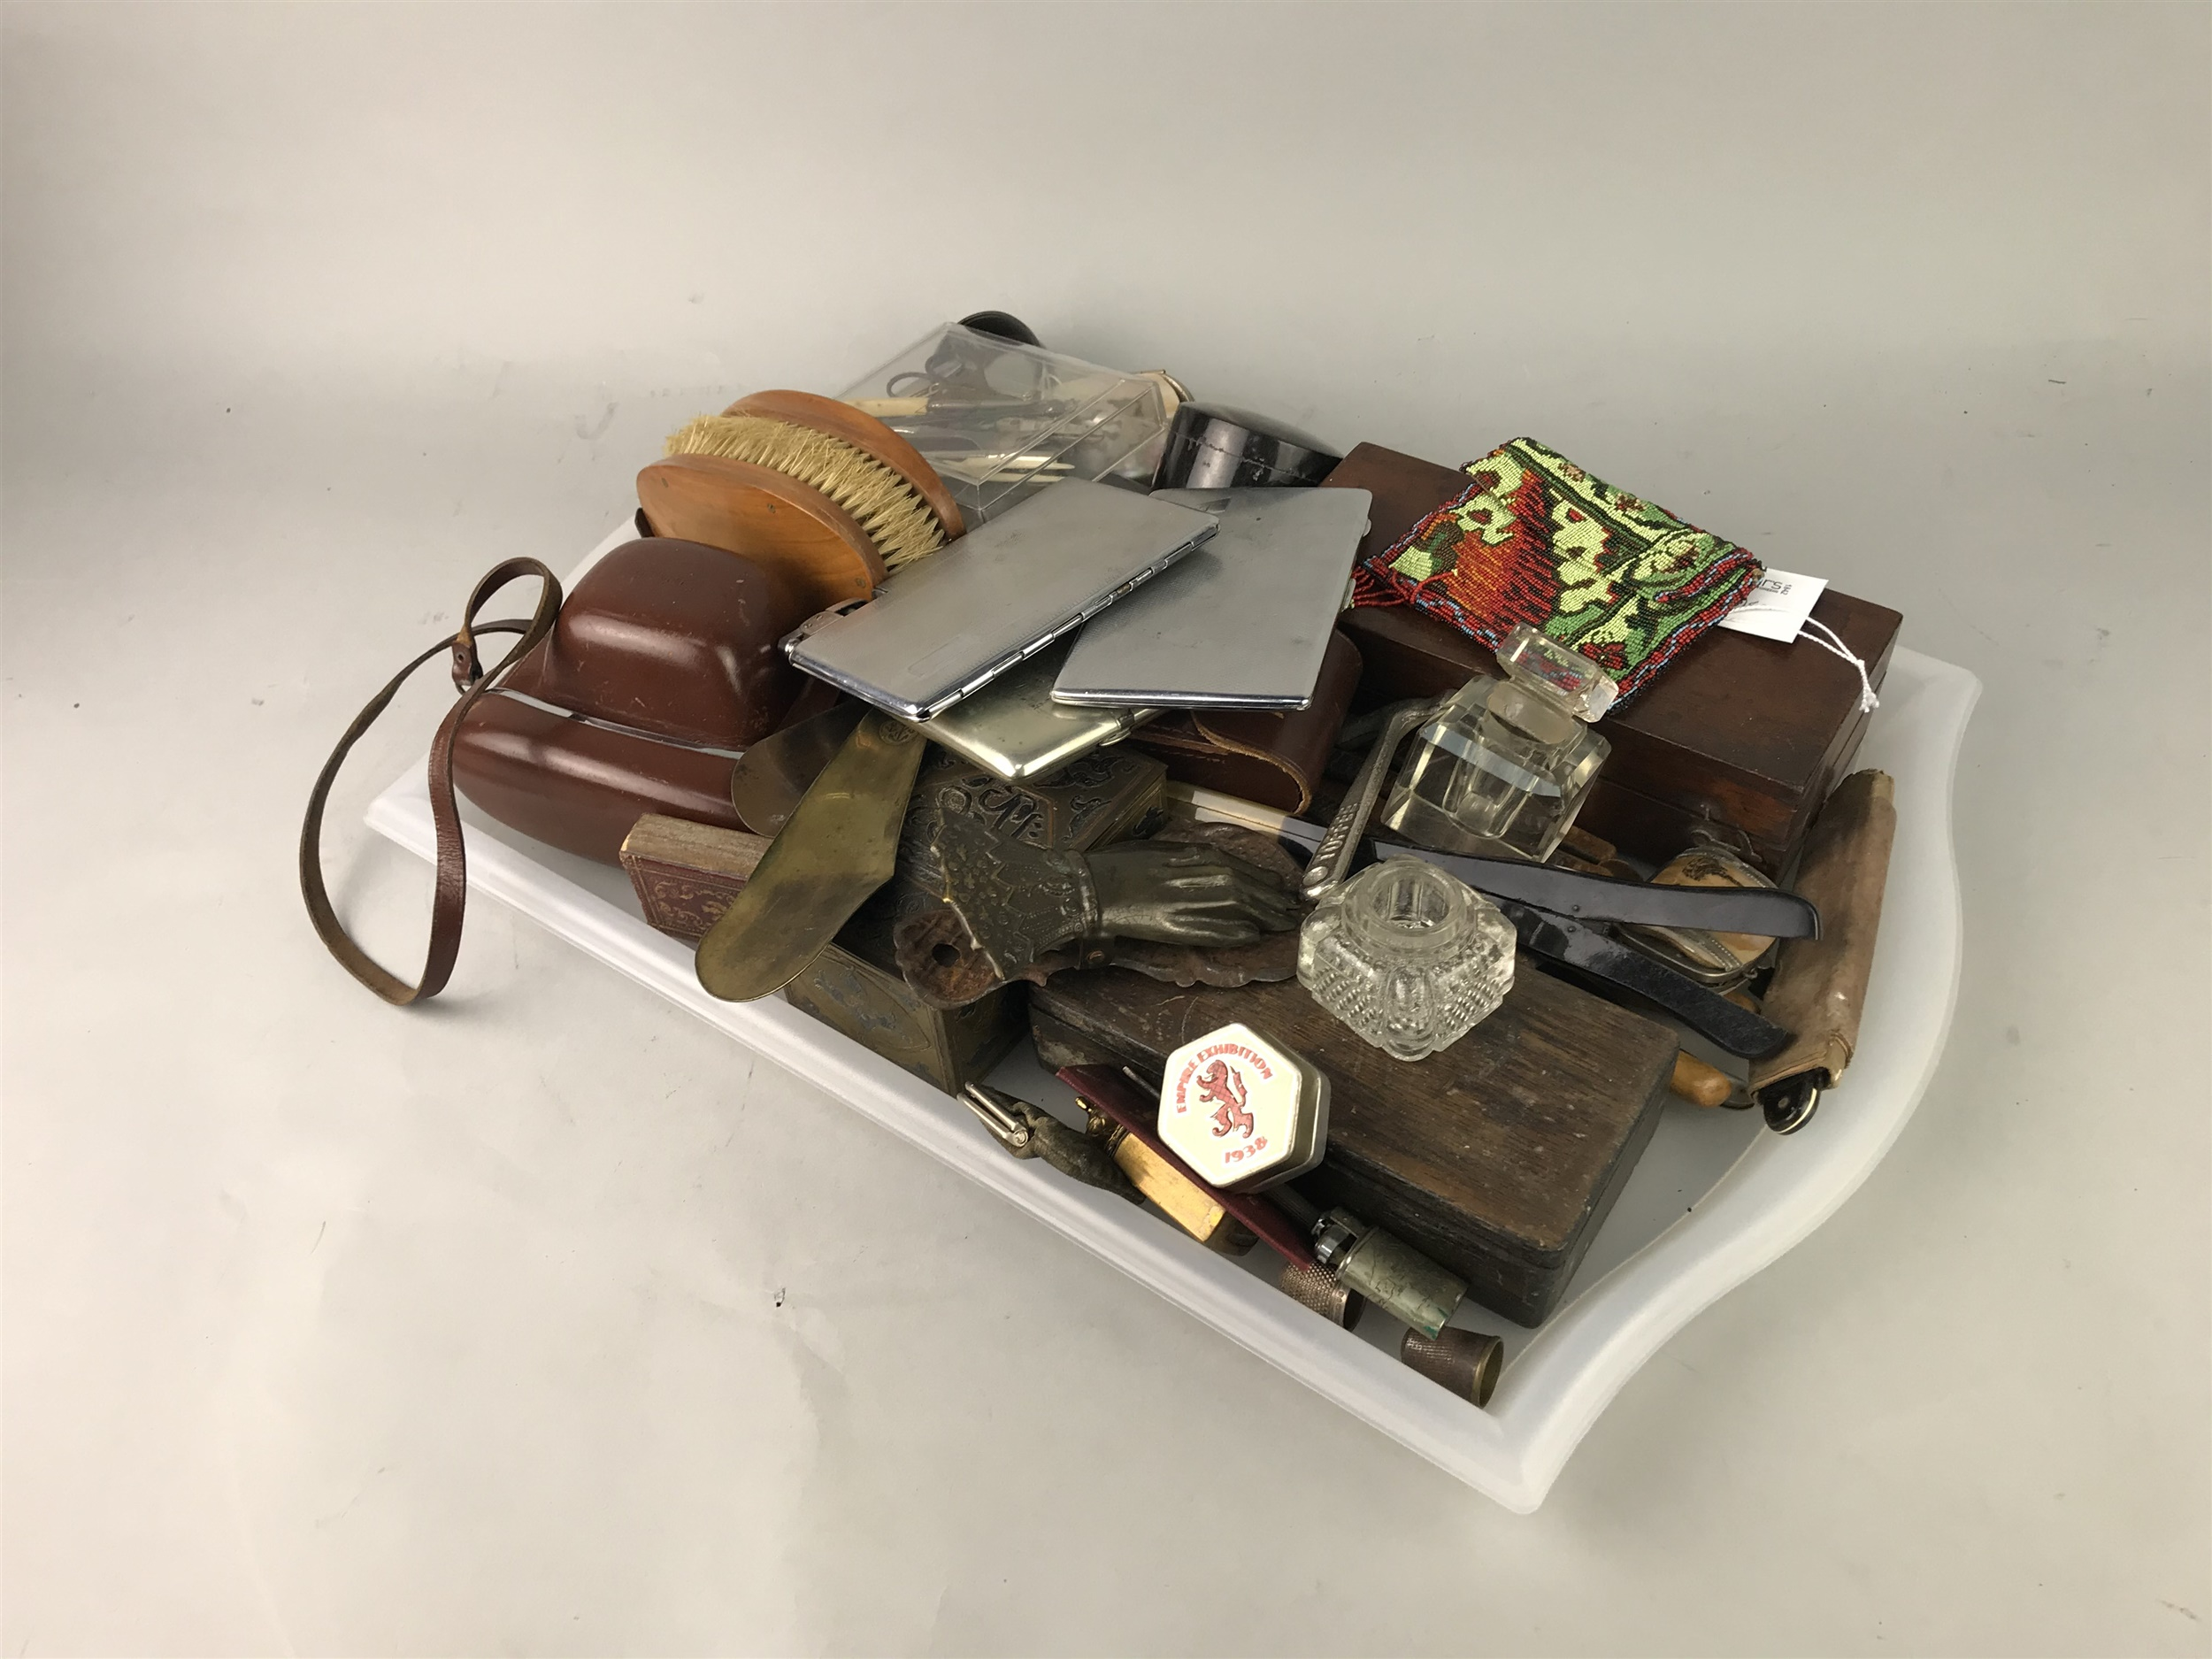 A SYKES HYDROMETER, A CIGARETTE CASE AND OTHER VARIOUS ITEMS